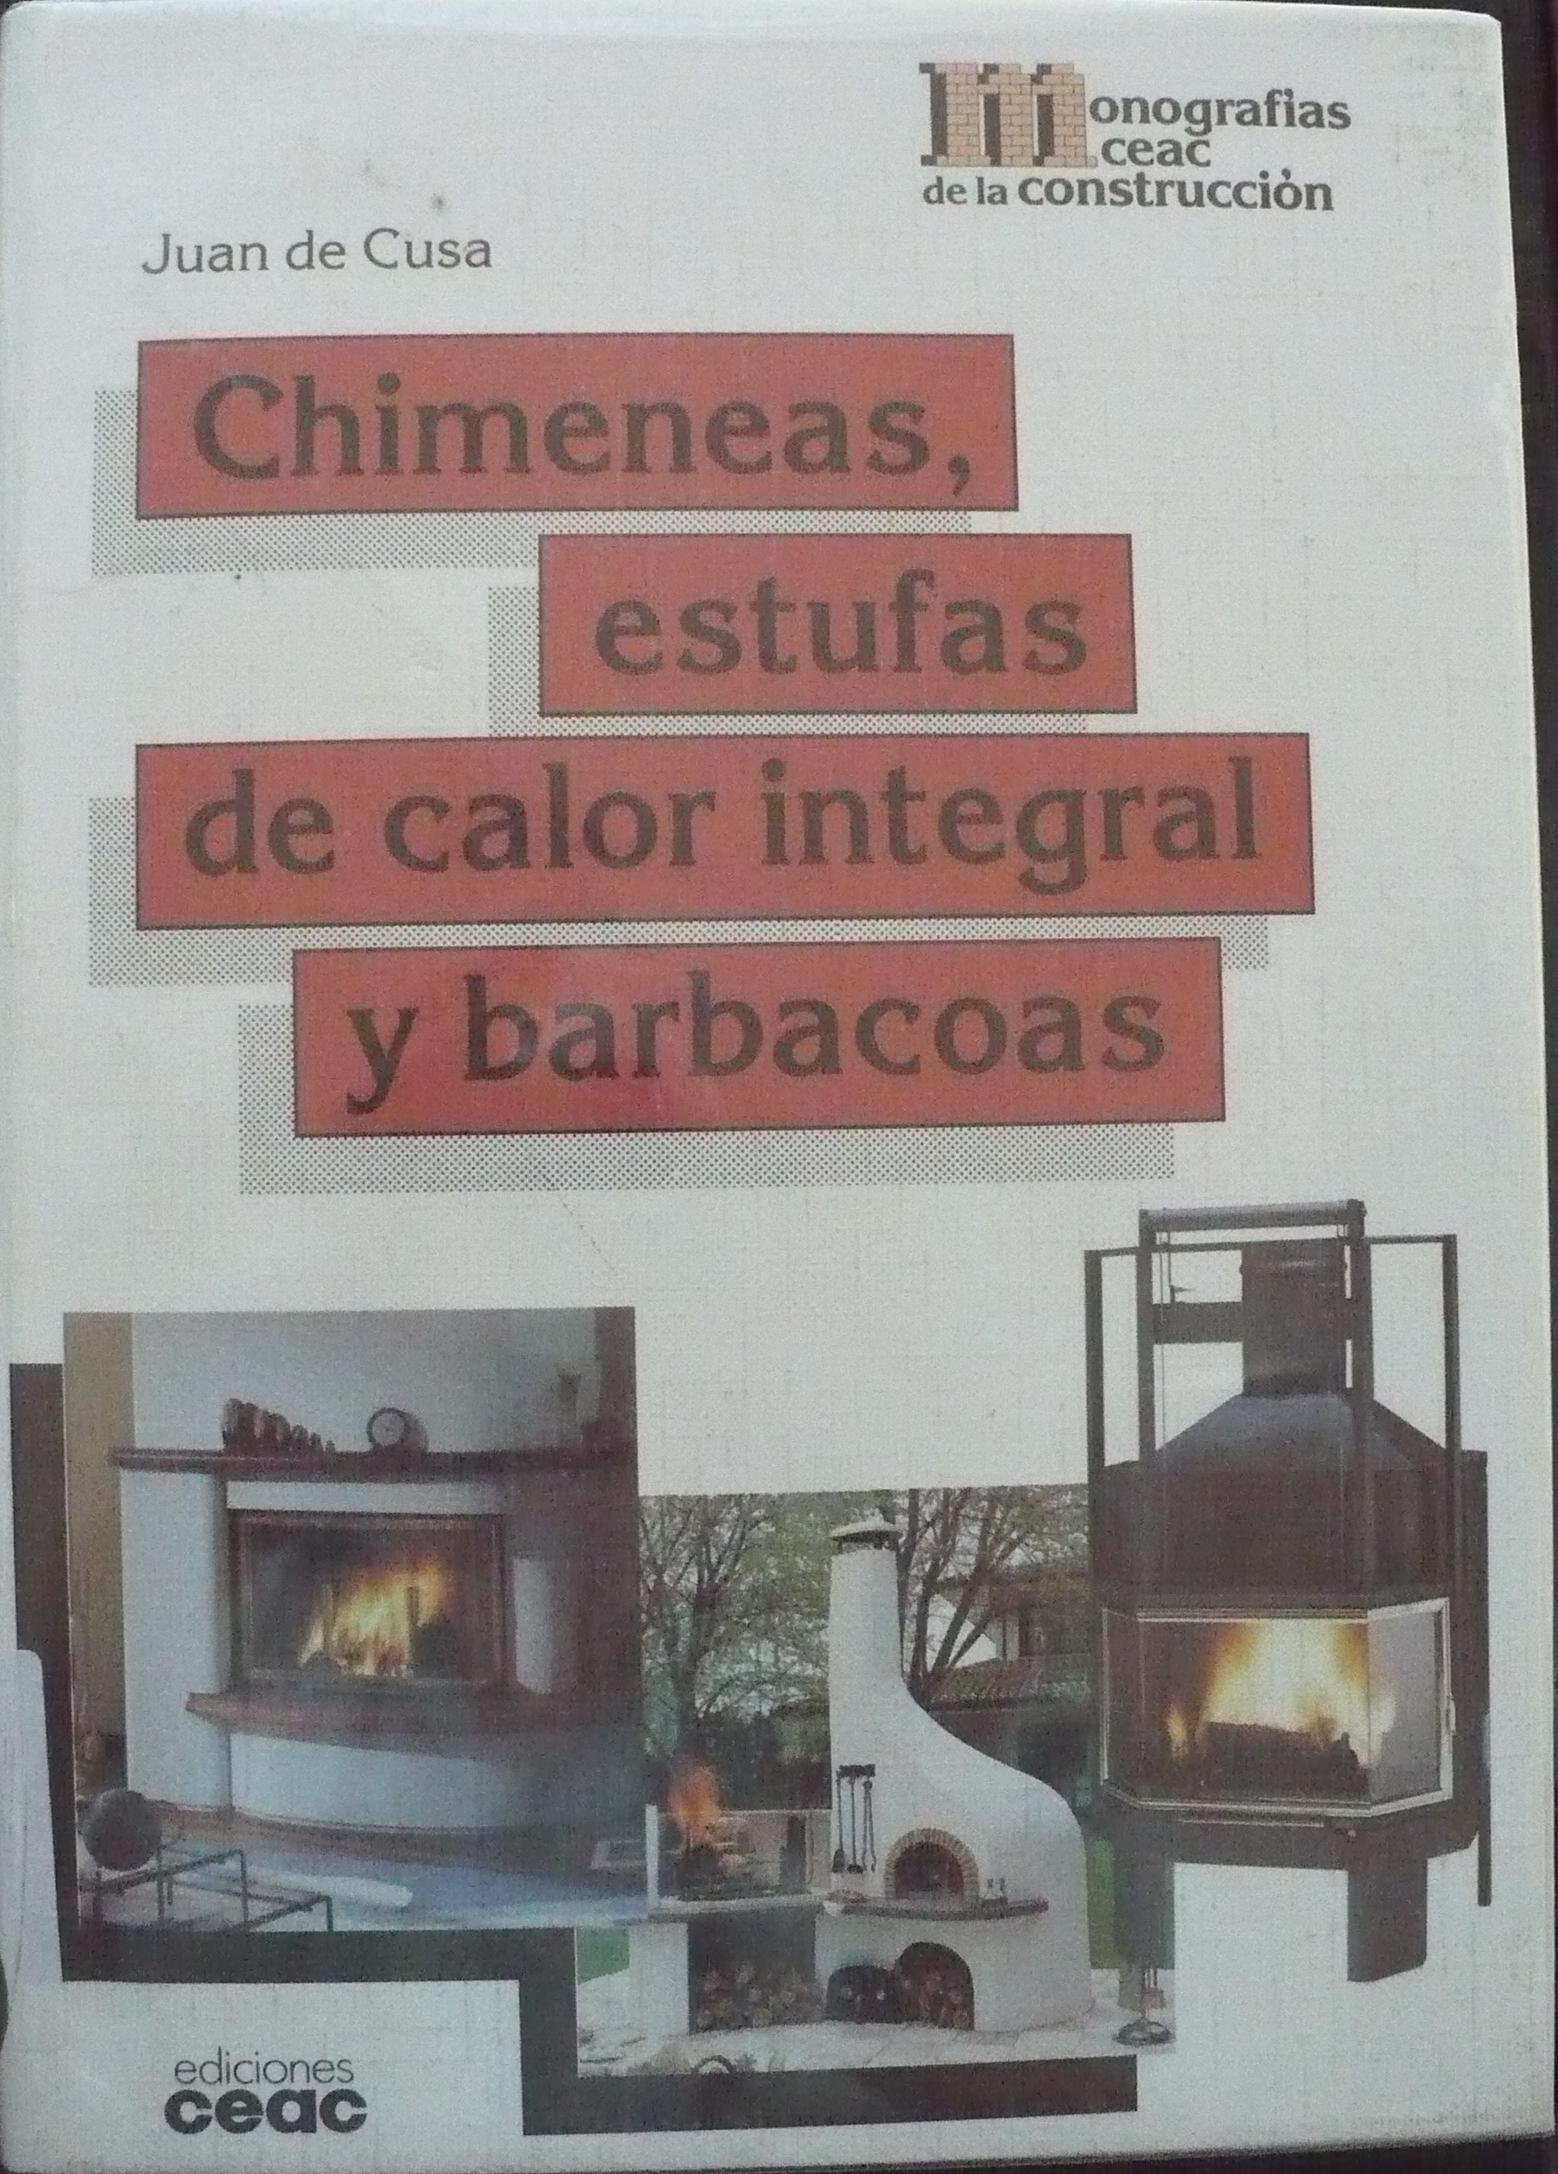 Chimeneas, Estufas de Calor Integral y Barbacoas (Spanish Edition): Juan de Cusa Ramos: 9788432929861: Amazon.com: Books